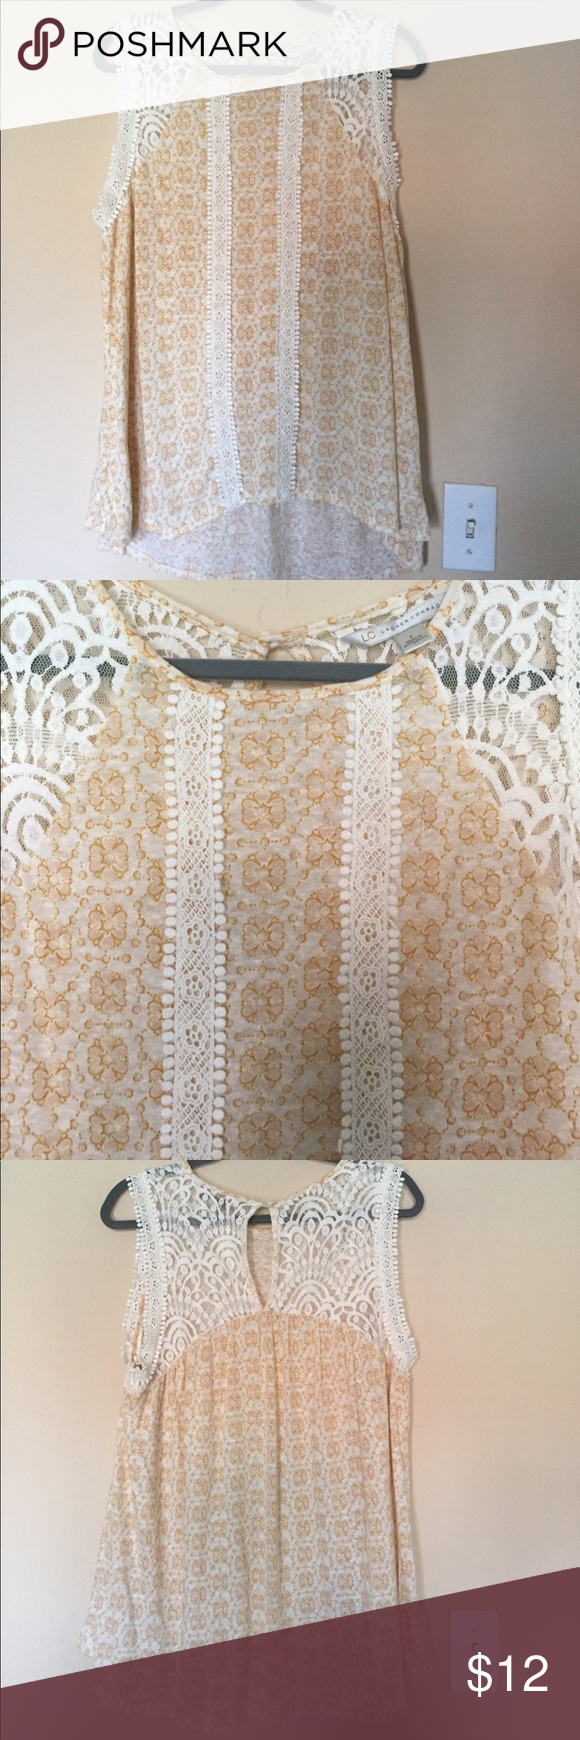 LC Lauren Conrad top with lace detailing. LC Lauren Conrad top with lace detailing. Cream with tan floral pattern. Lace detail on back too. Size L LC Lauren Conrad Tops Tunics